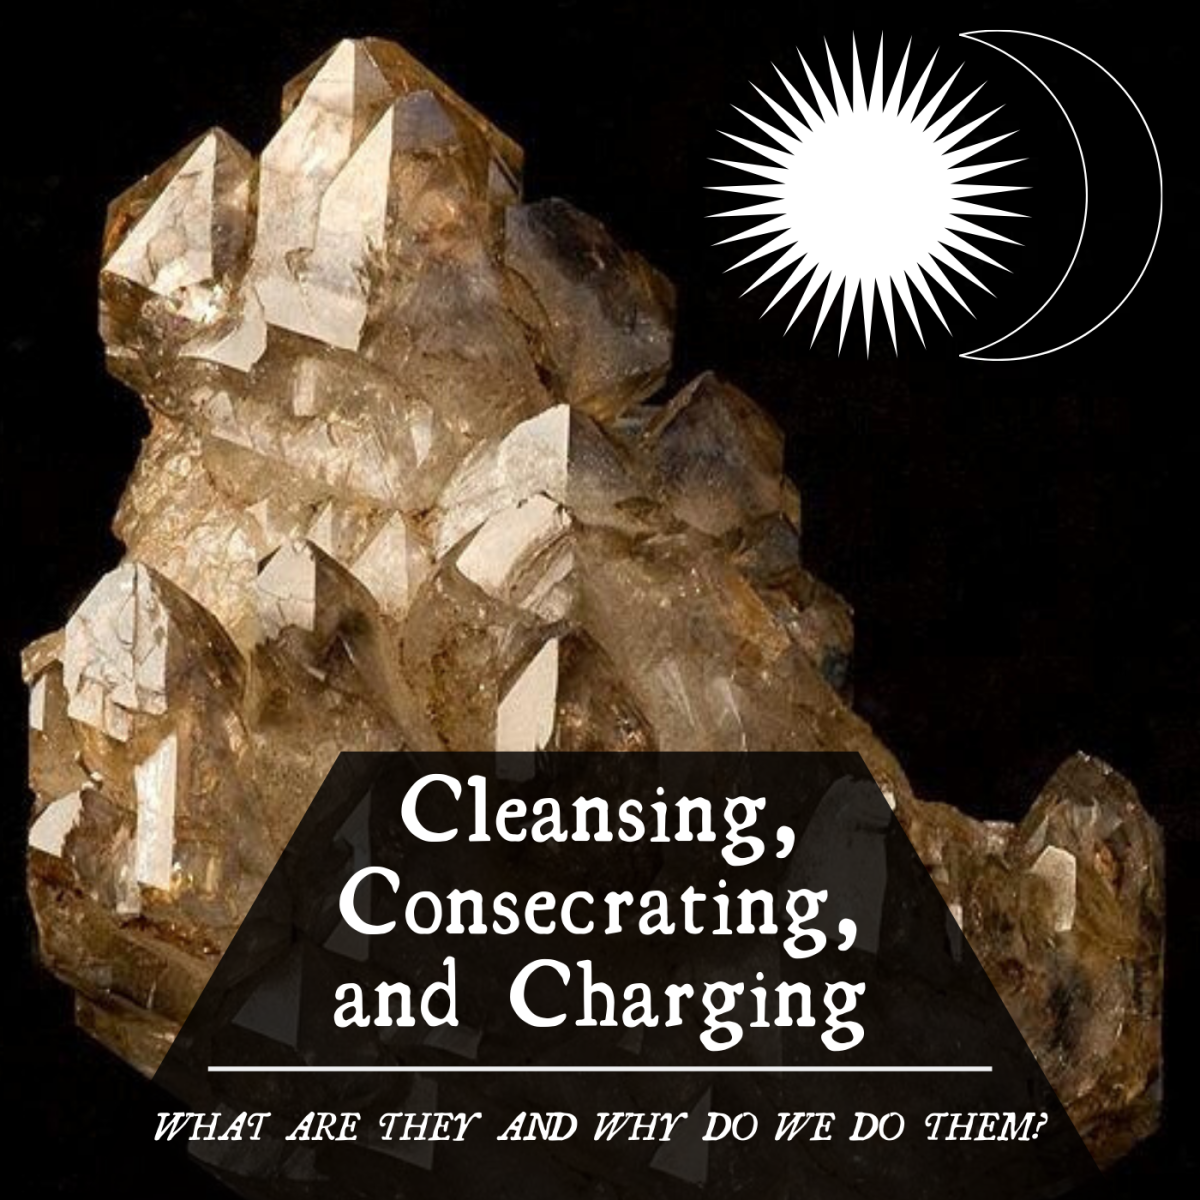 Wicca Basics and the 3 Cs: Cleansing, Consecrating, and Charging